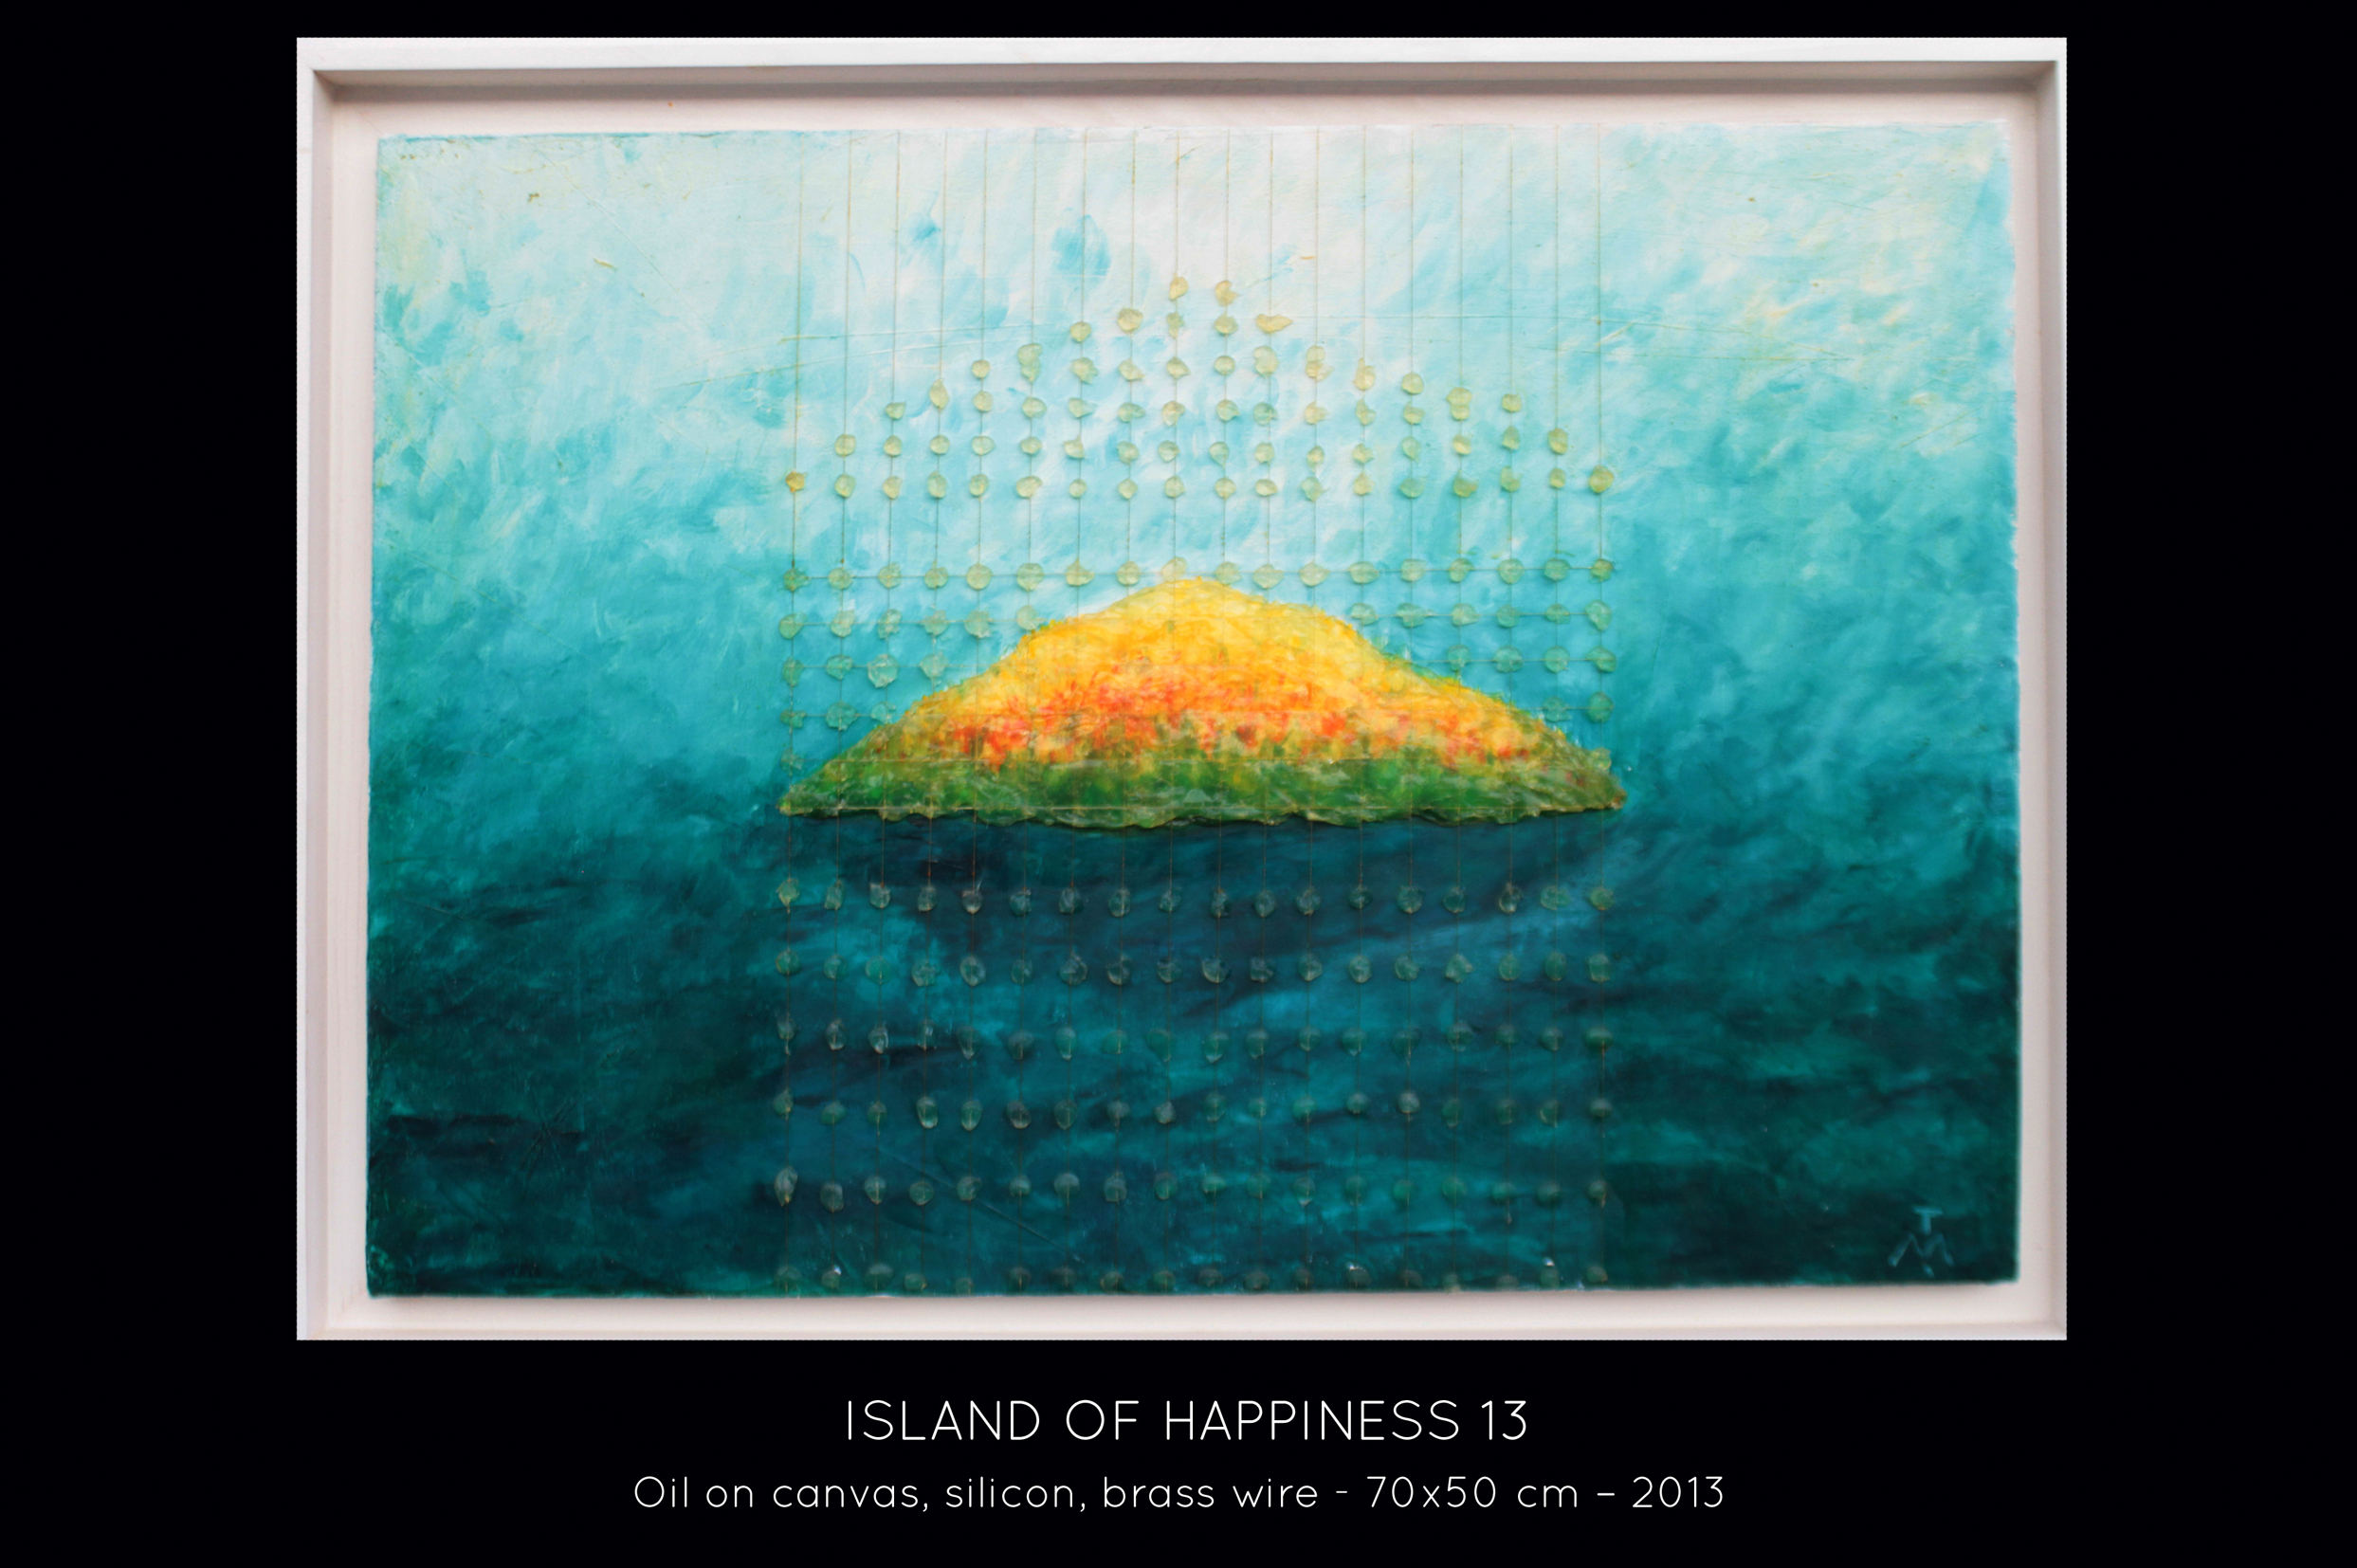 ISLAND OF HAPPINESS 13